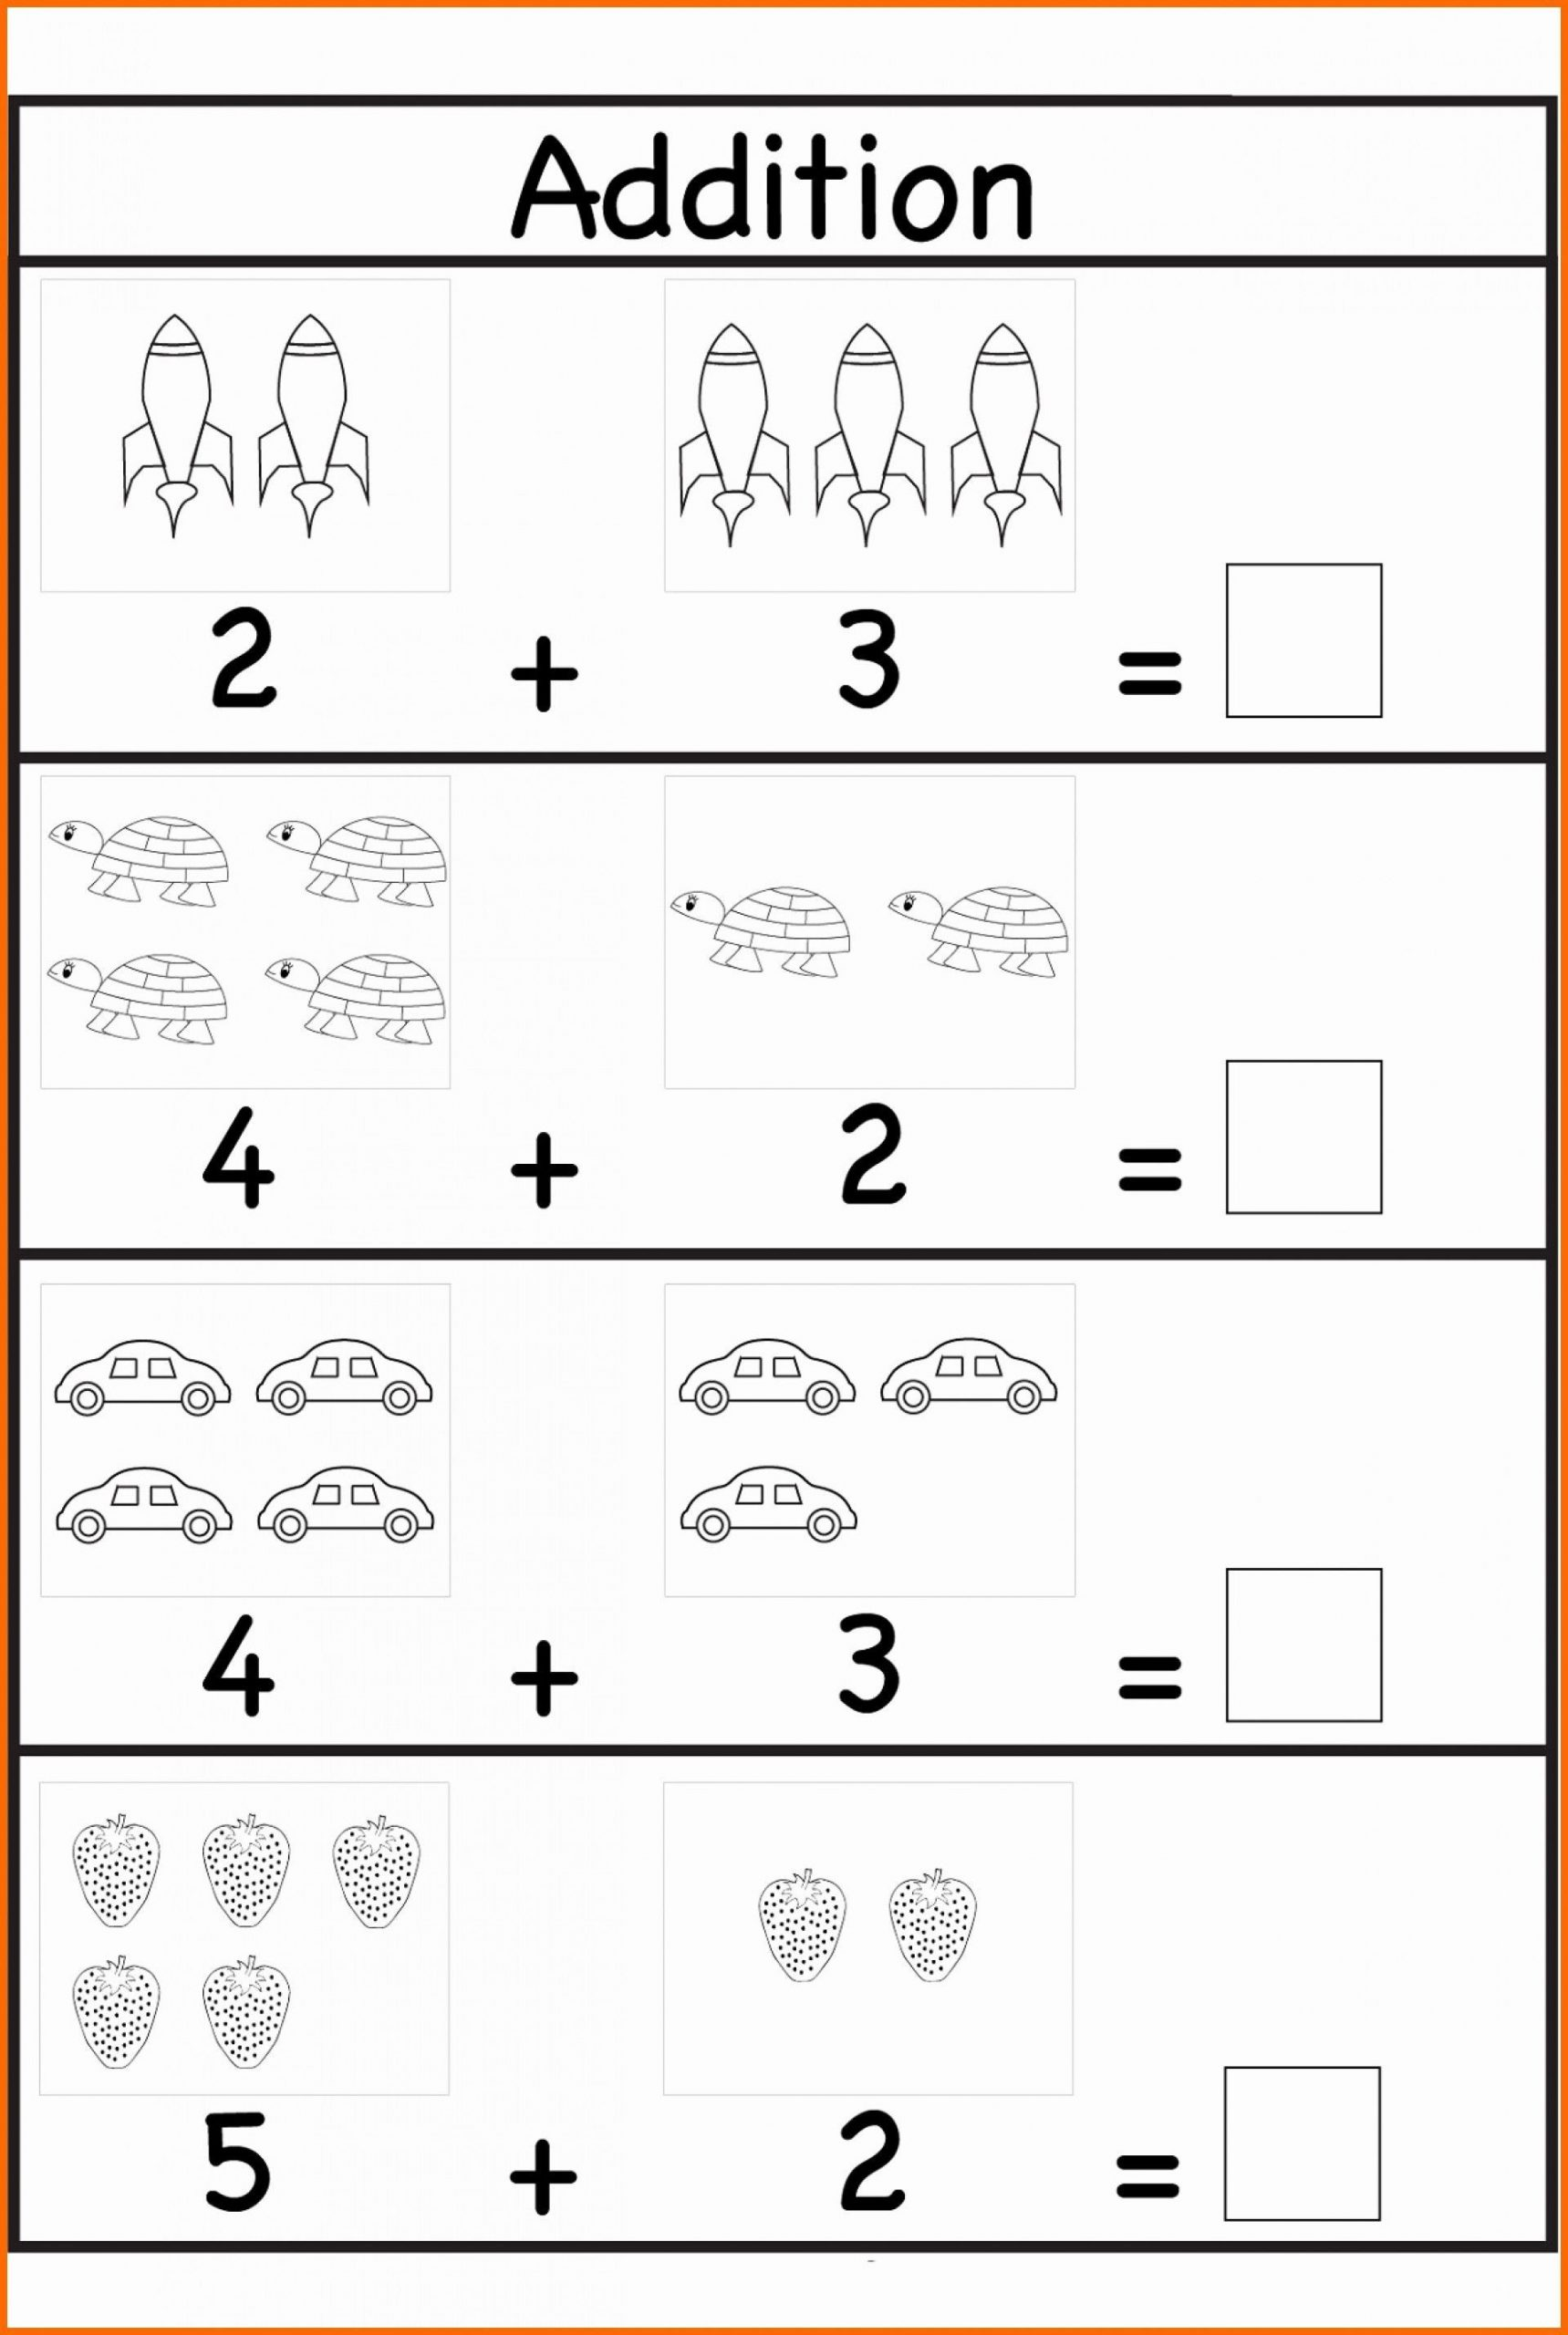 Preschool Addition Worksheets Printable 010 Free Printable Preschool Maths Worksheets them and Try